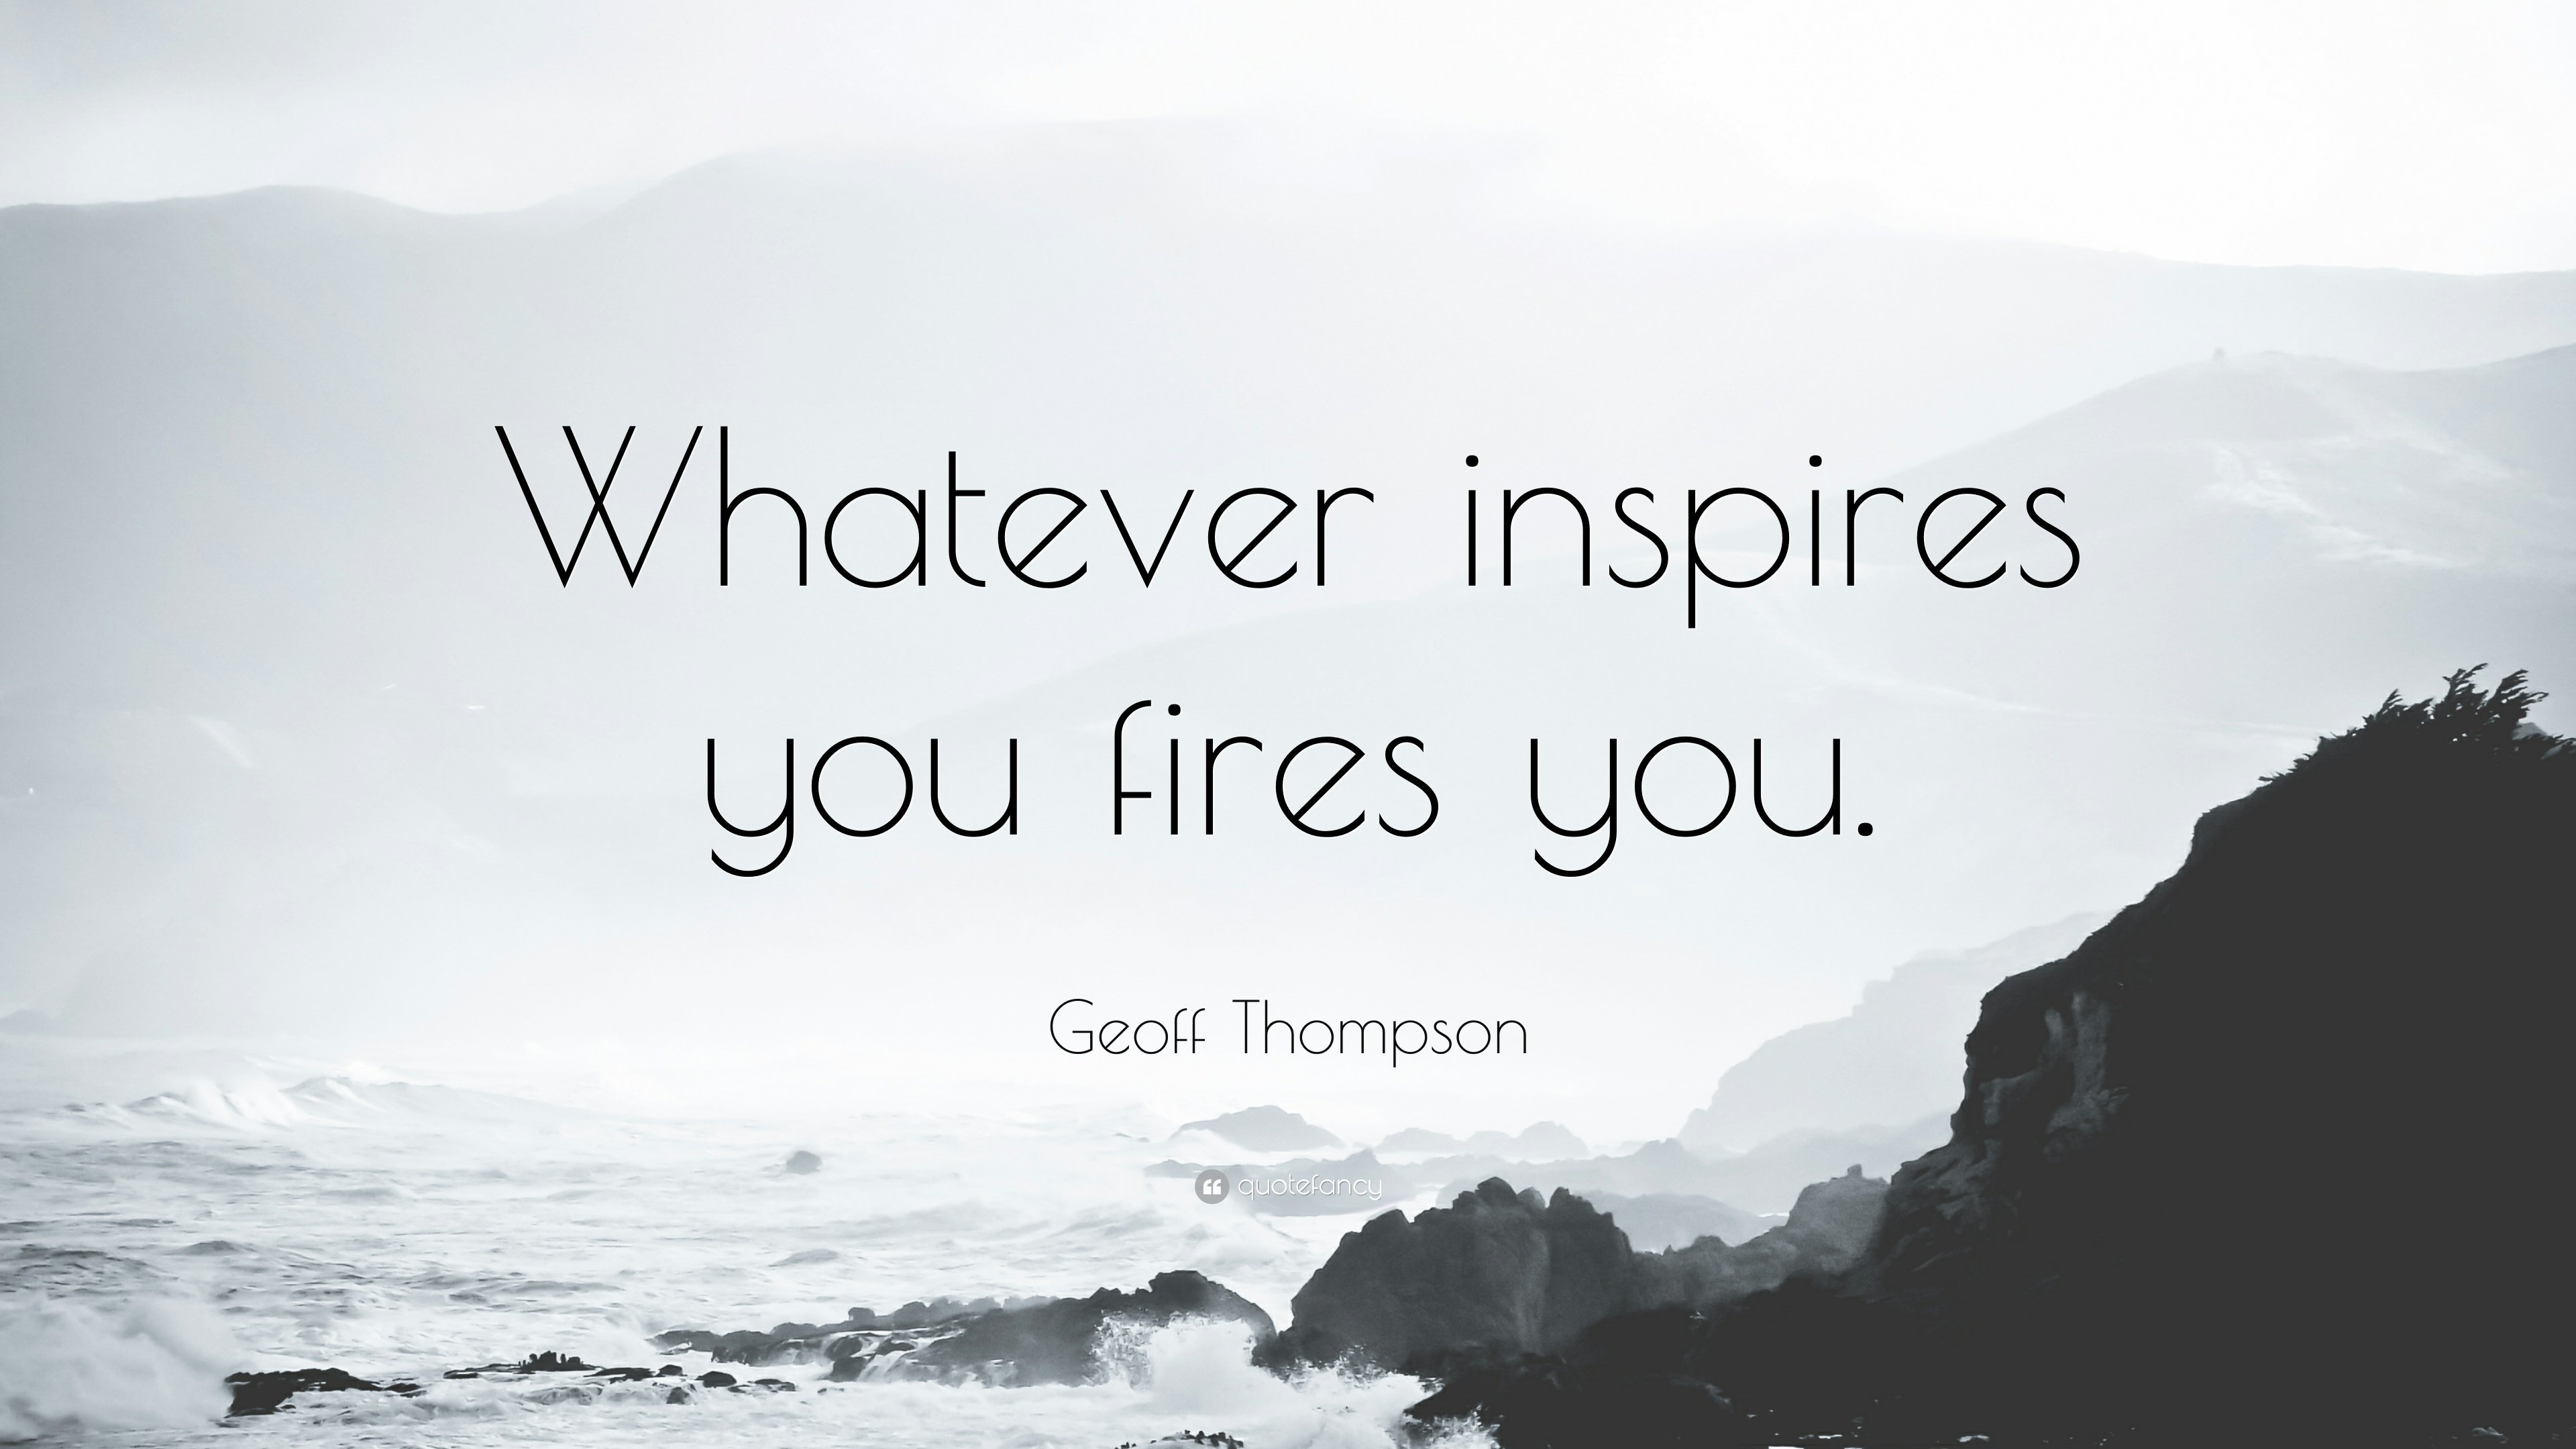 geoff thompson quote whatever inspires you fires you  geoff thompson quote whatever inspires you fires you